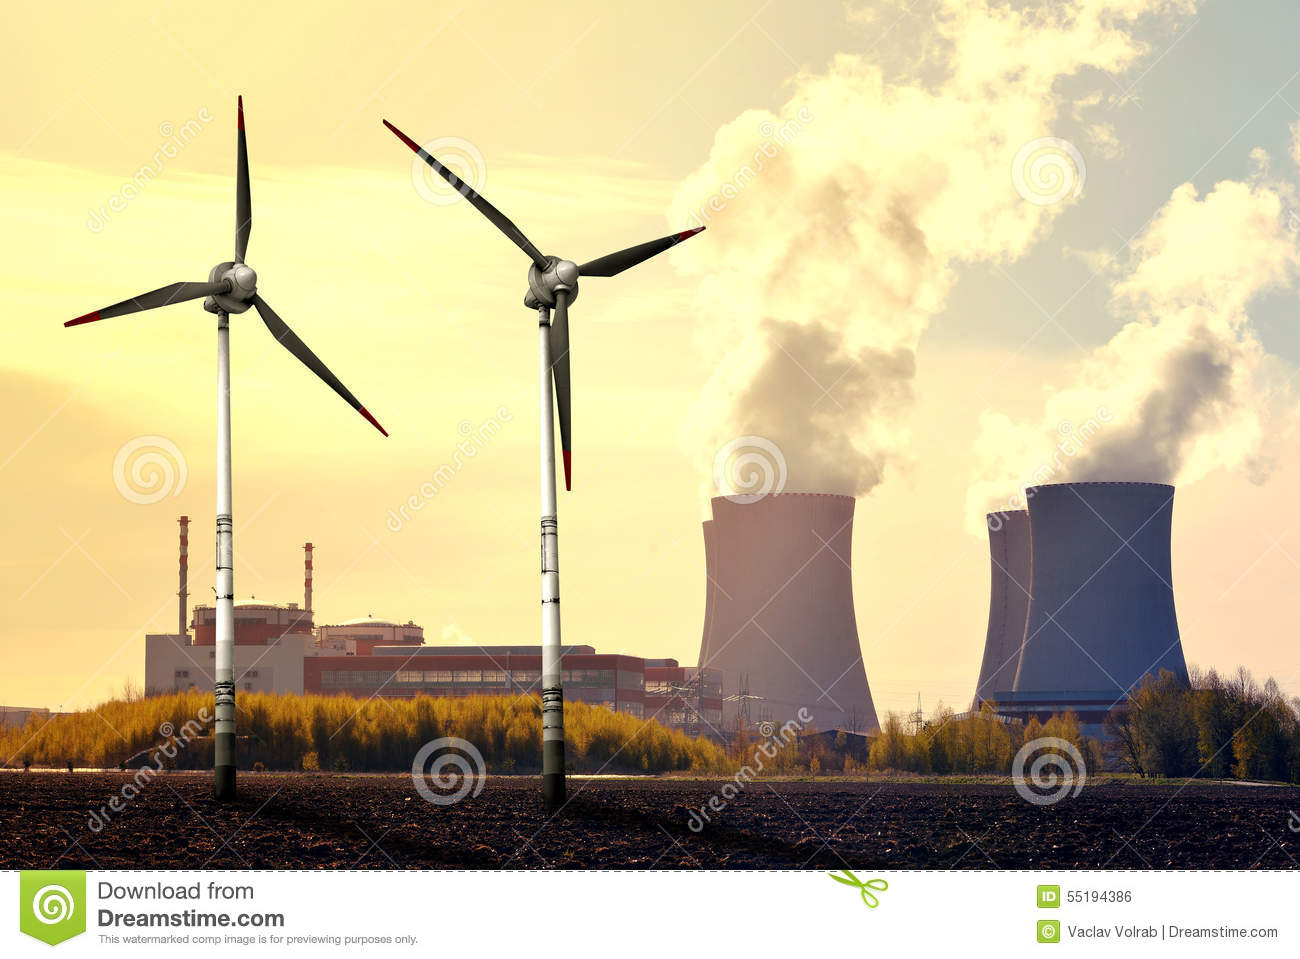 how are nuclear energy and wind energy similar